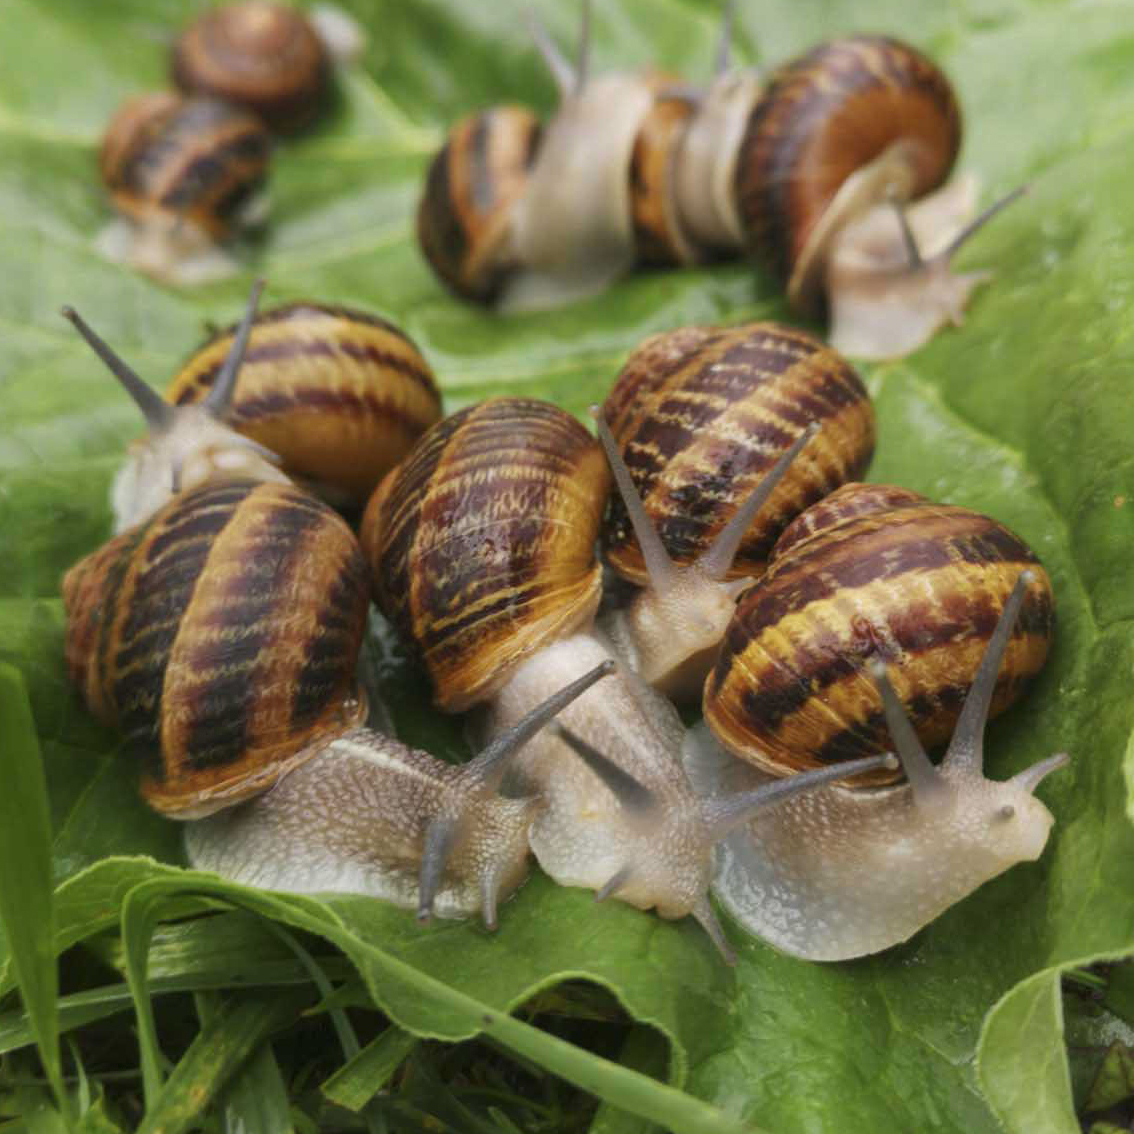 SNAIL FARM IN UKRAINE - QUICK PROFIT